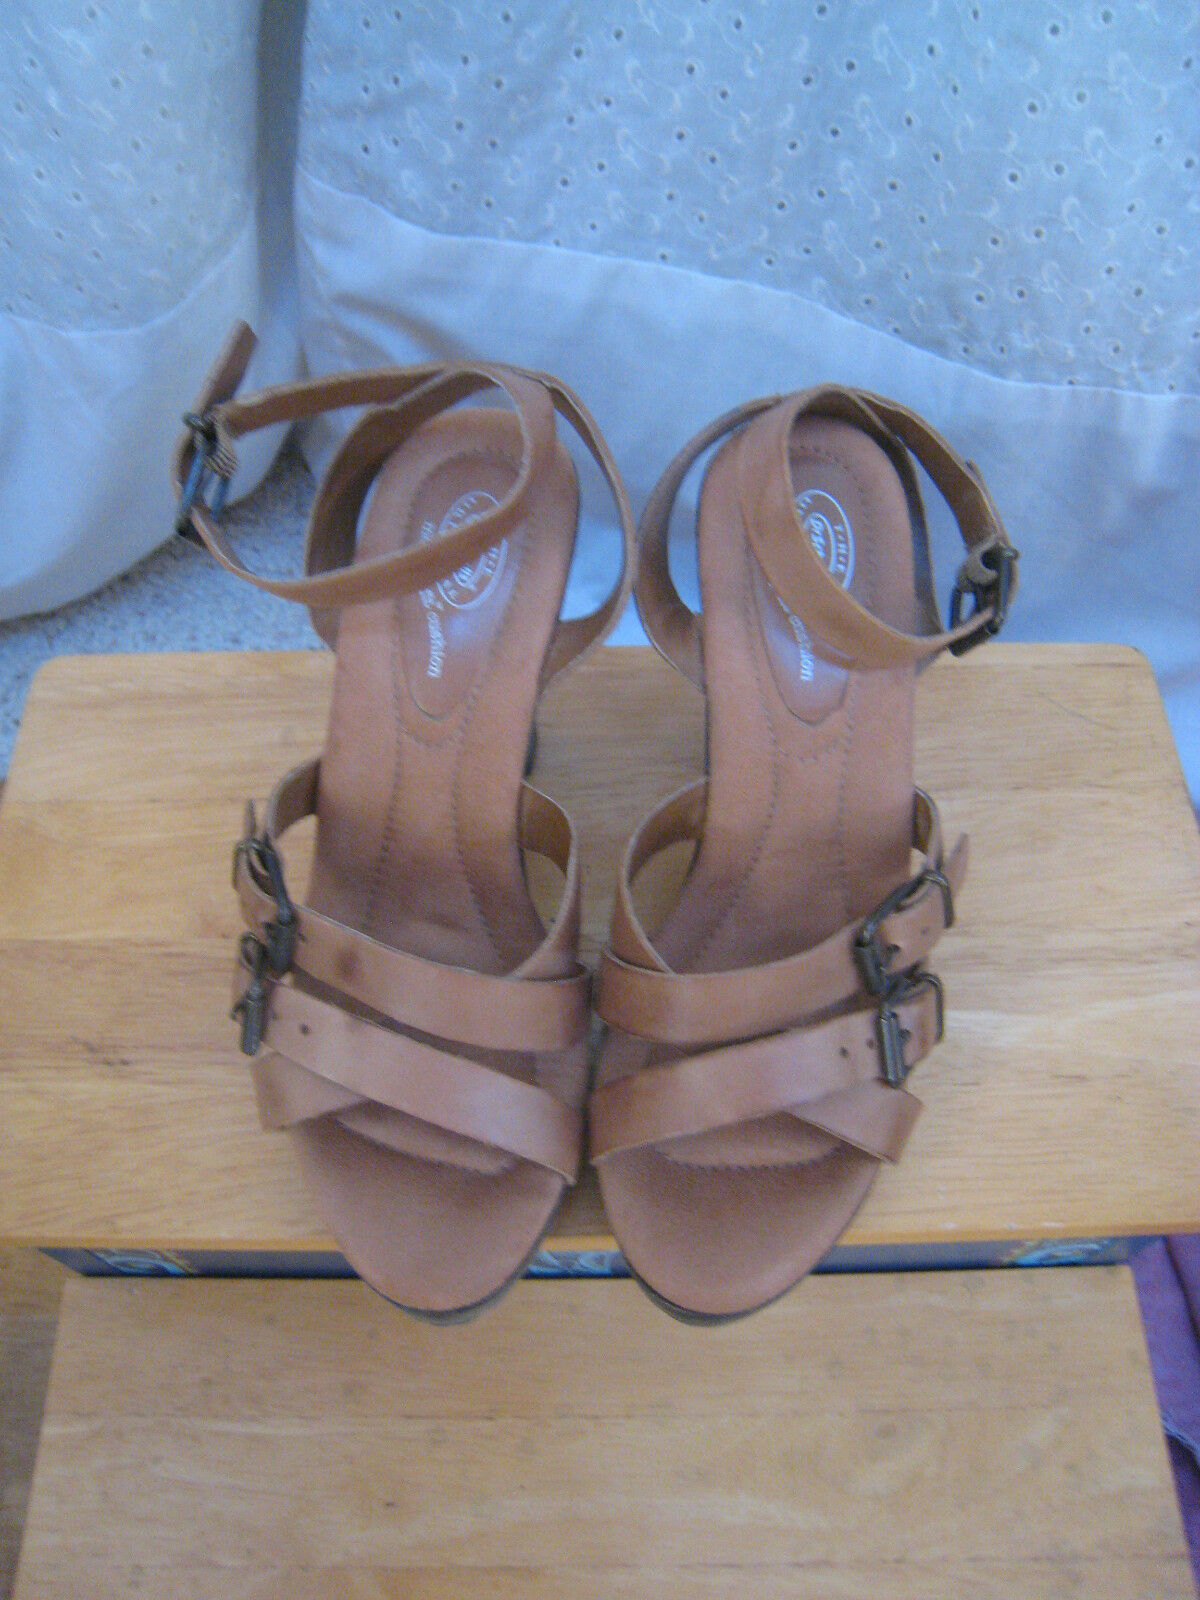 New  Dr. Scholls Tan Leder Strappy Wood 4 inch Heels Buckle Schuhes memory fit 6